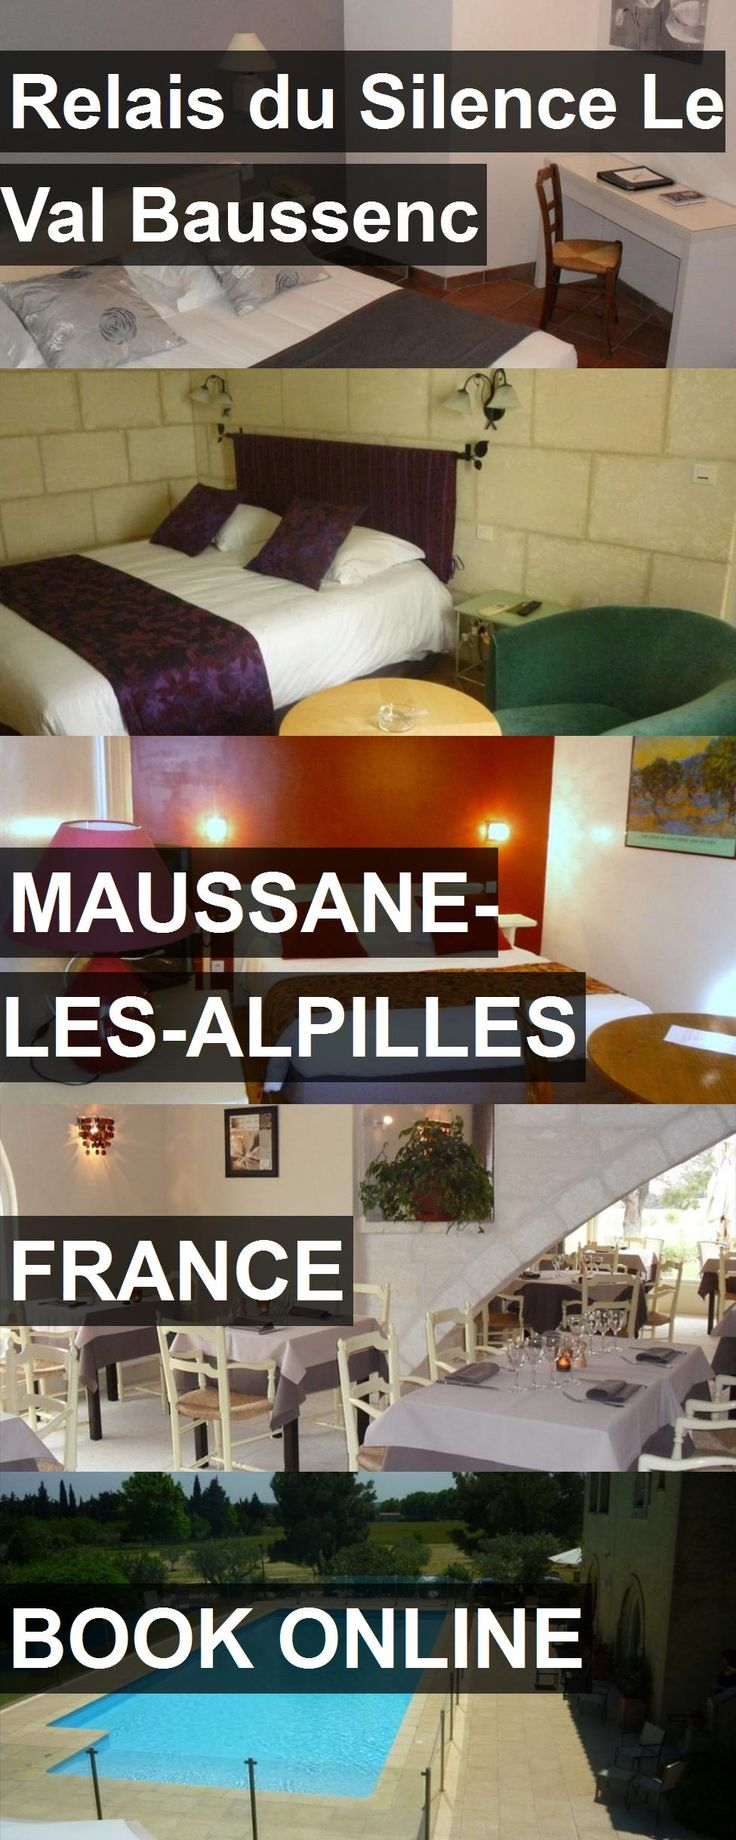 Hotel Relais du Silence Le Val Baussenc in Maussane-les-Alpilles, France. For more information, photos, reviews and best prices please follow the link. #France #Maussane-les-Alpilles #RelaisduSilenceLeValBaussenc #hotel #travel #vacation